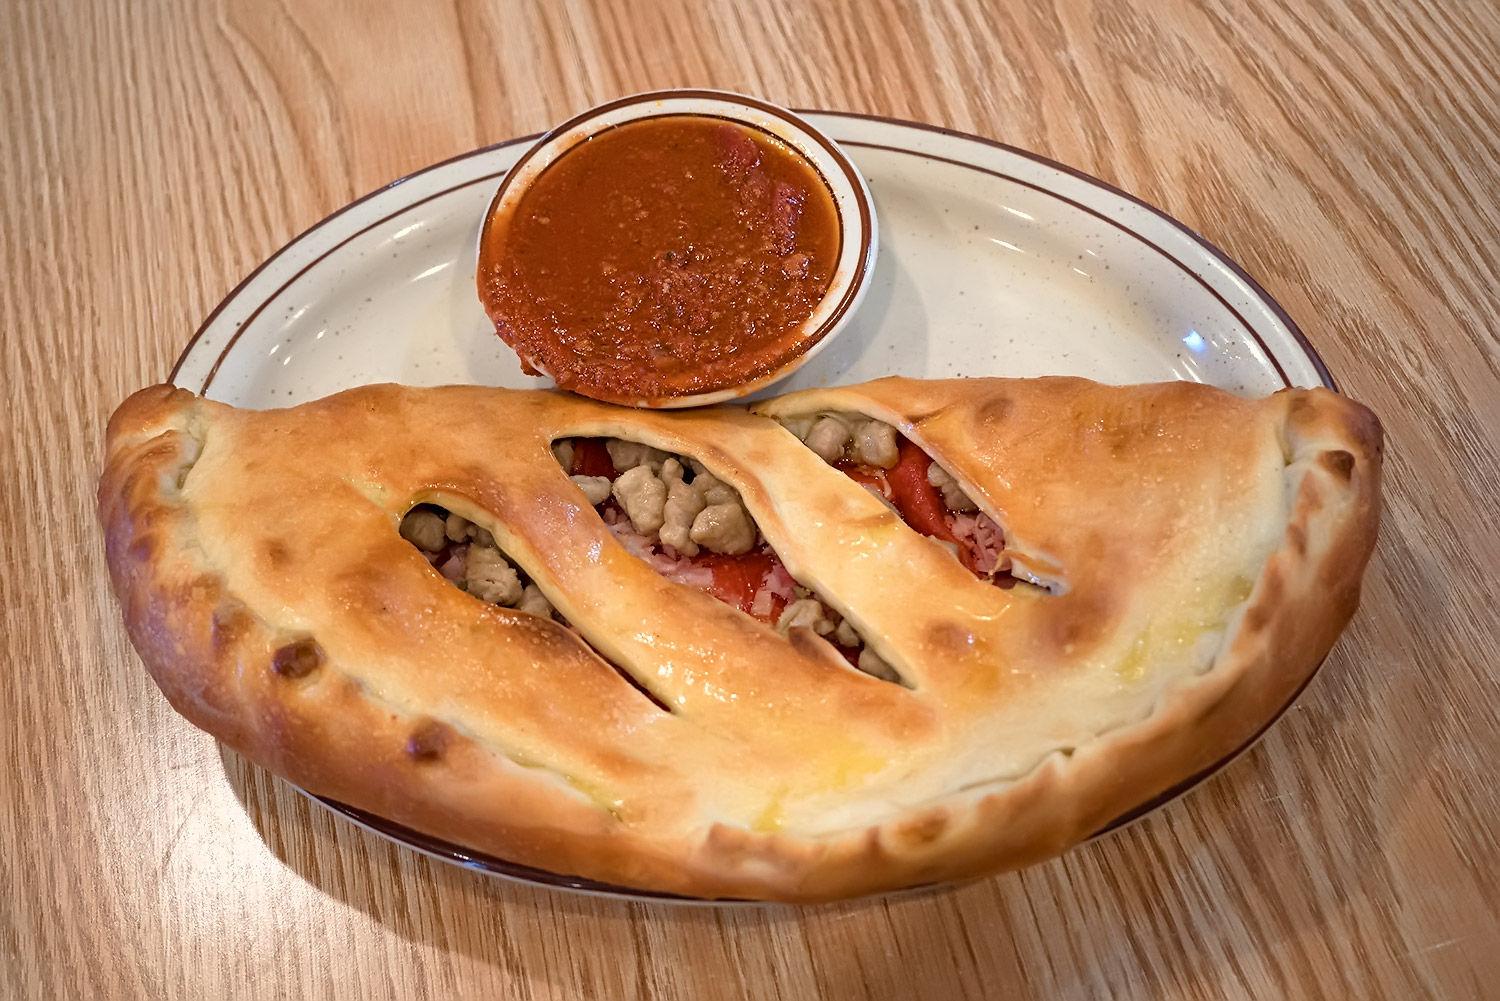 Cheese Stromboli with Three Items Image